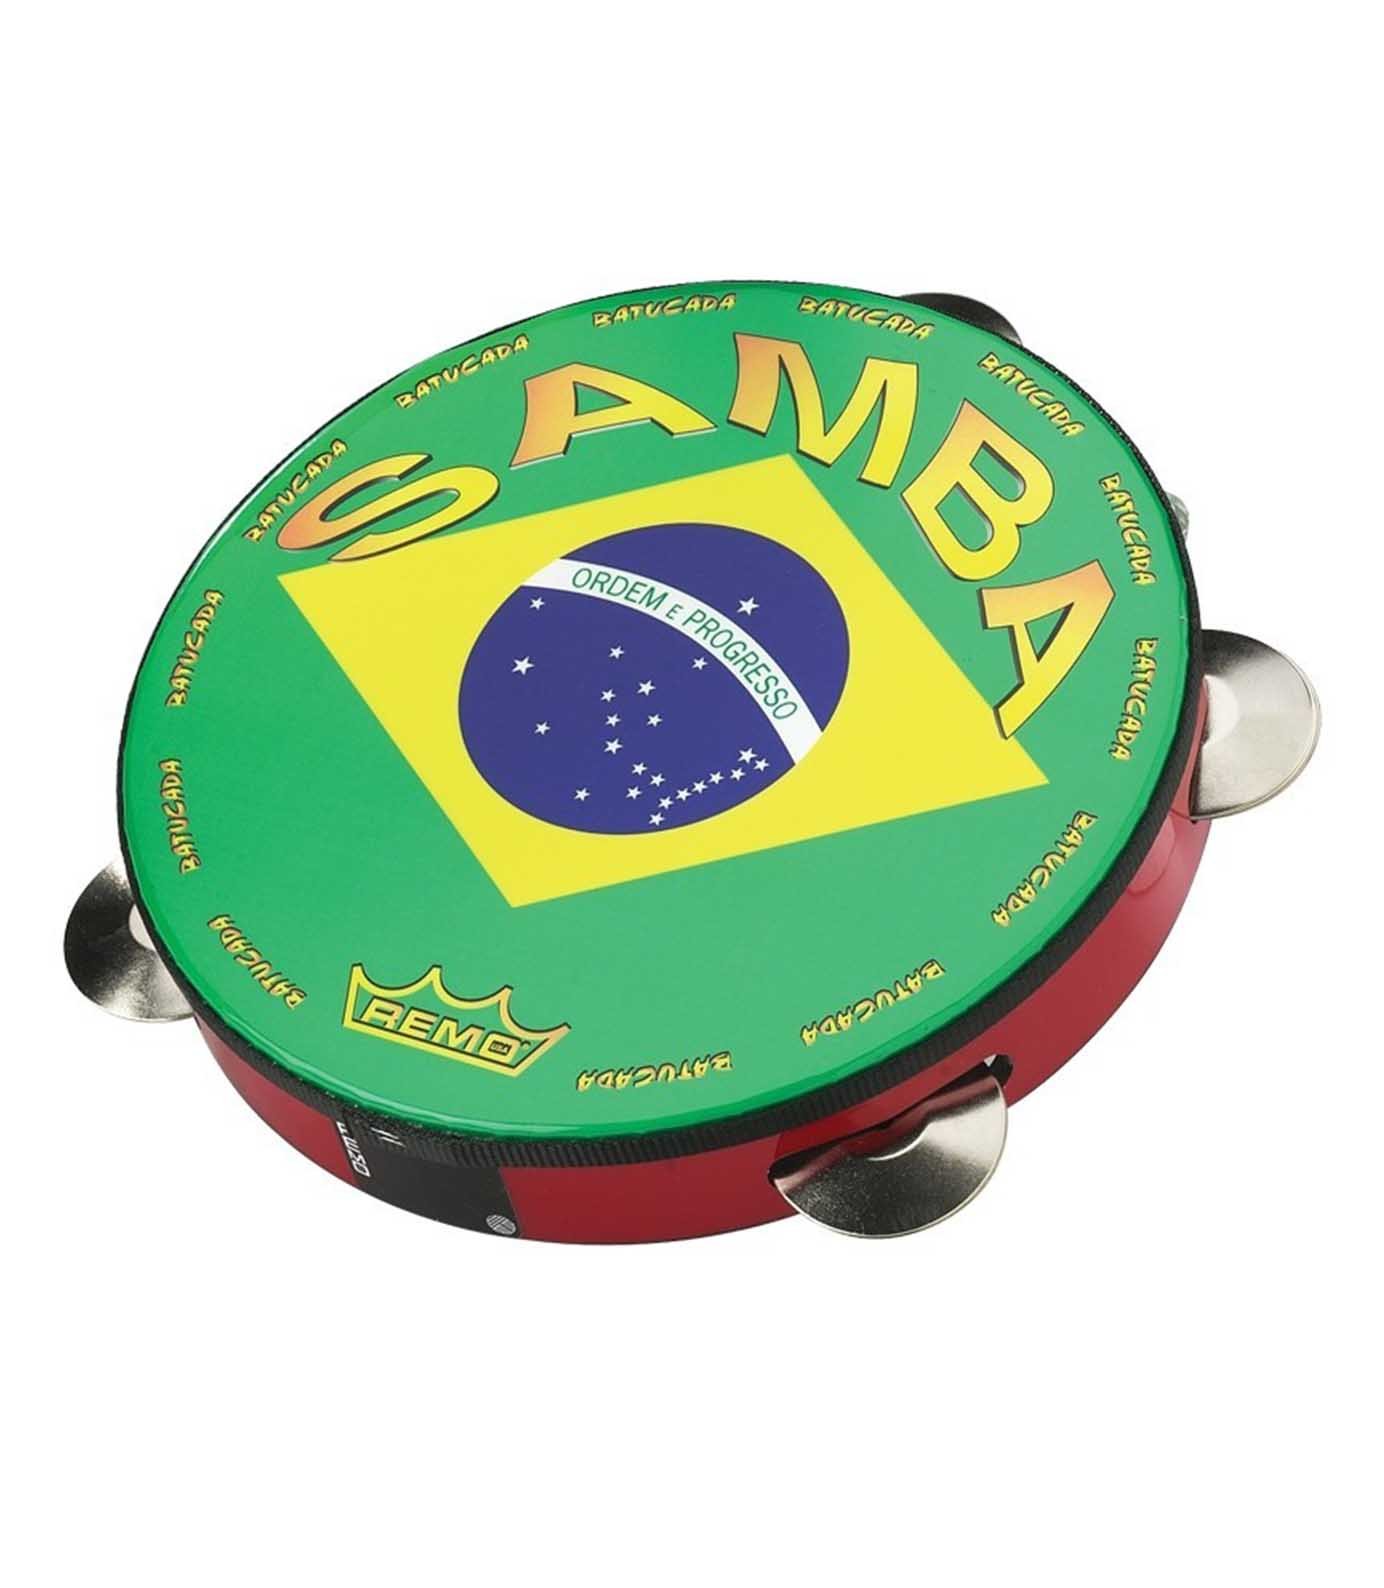 Buy Remo Valencia Samba Pandeiro Drum Cherry Red 10 inch Melody House